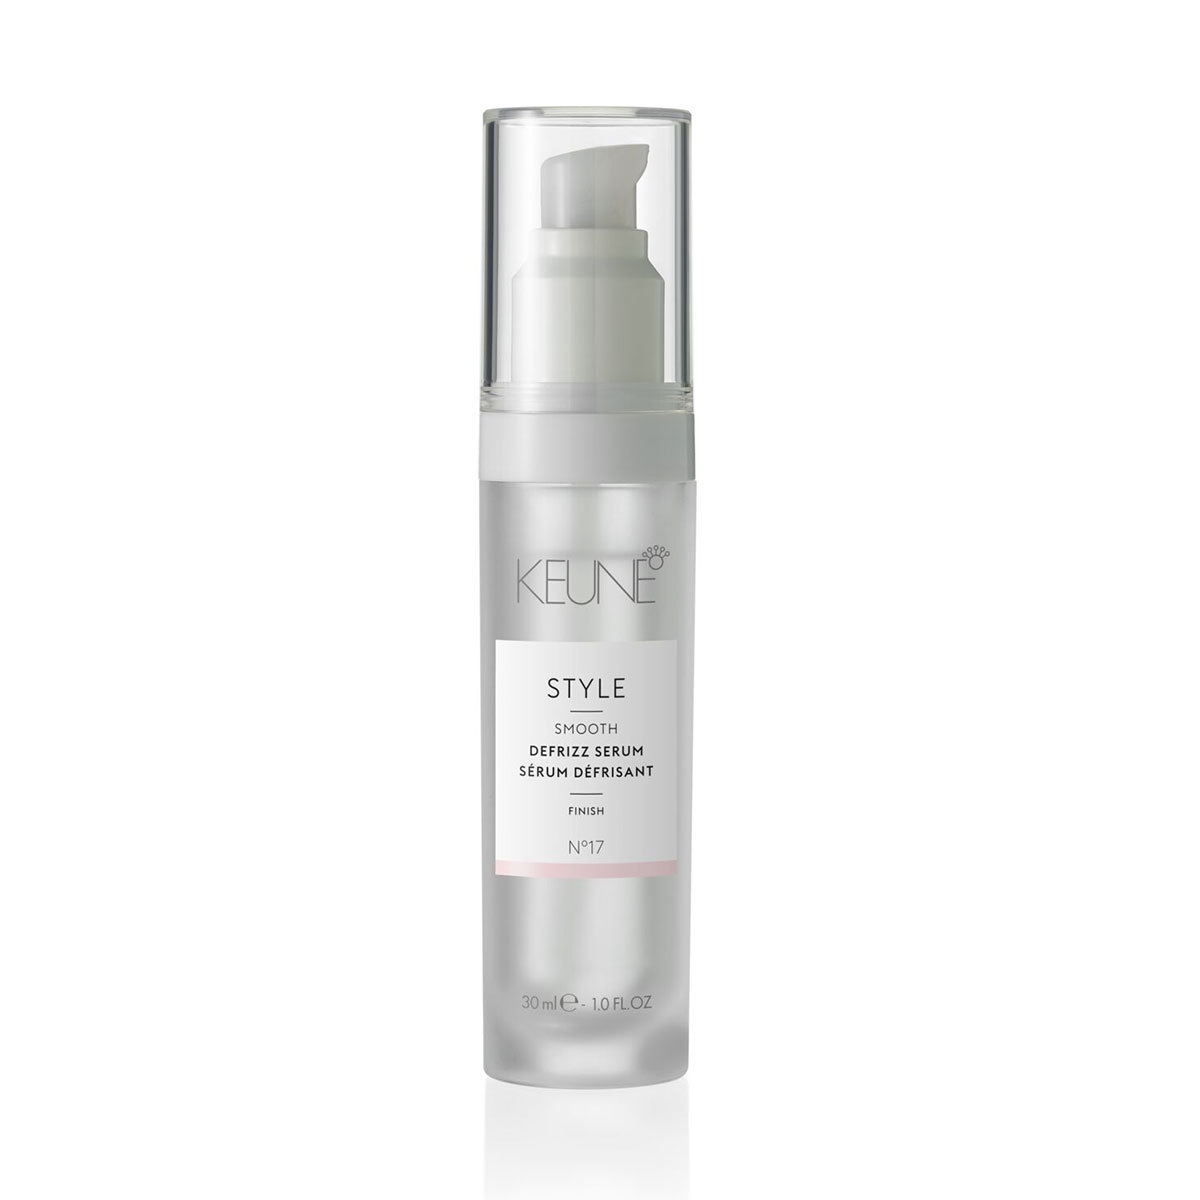 Retina b89e79819b9b9a54dbe0 811ca88003f4bed982df 27407 keune style smooth no17 defrizz serum 30ml medium 2